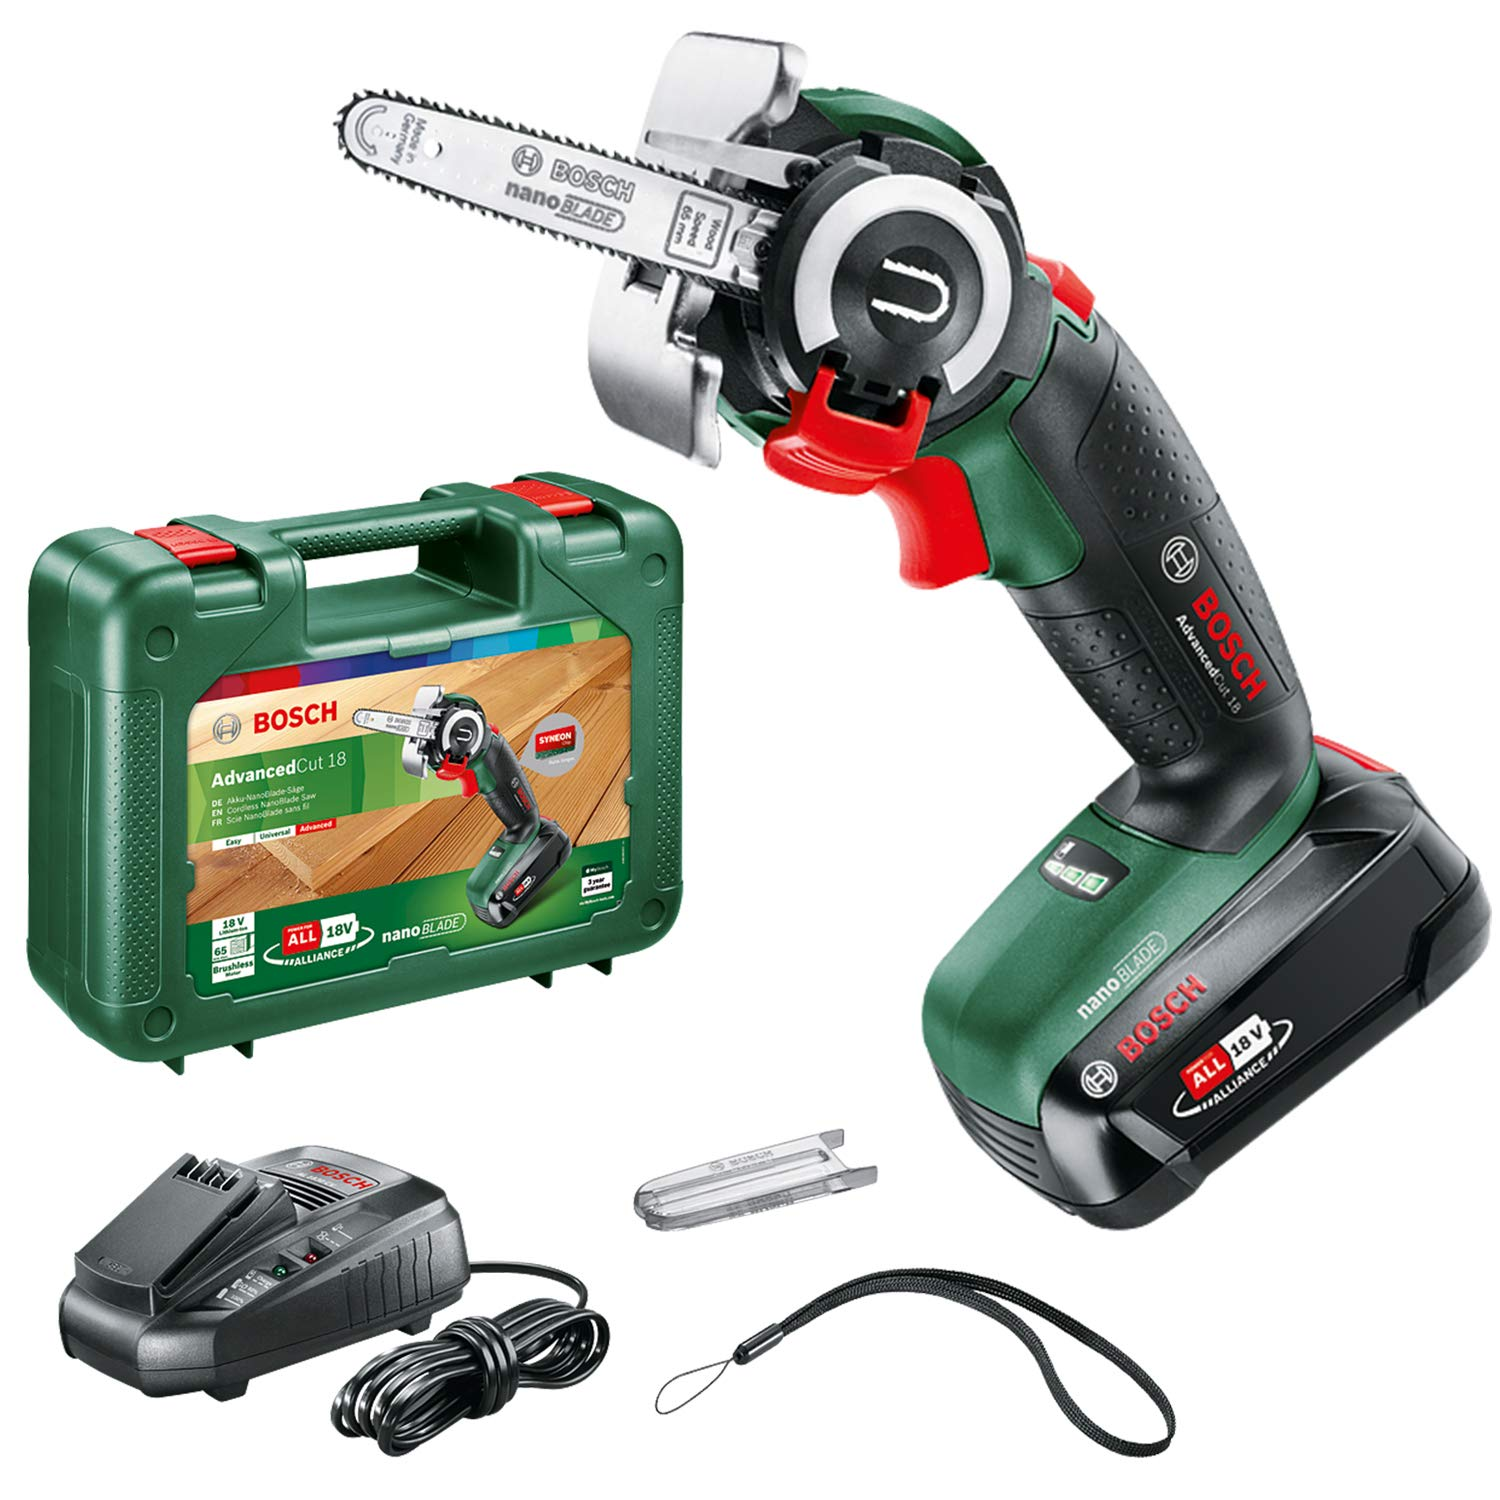 Bosch NanoBlade Cordless Saw AdvancedCut 18 (1x Battery, NanoBlade Technology, 18 Volt System, in Case)